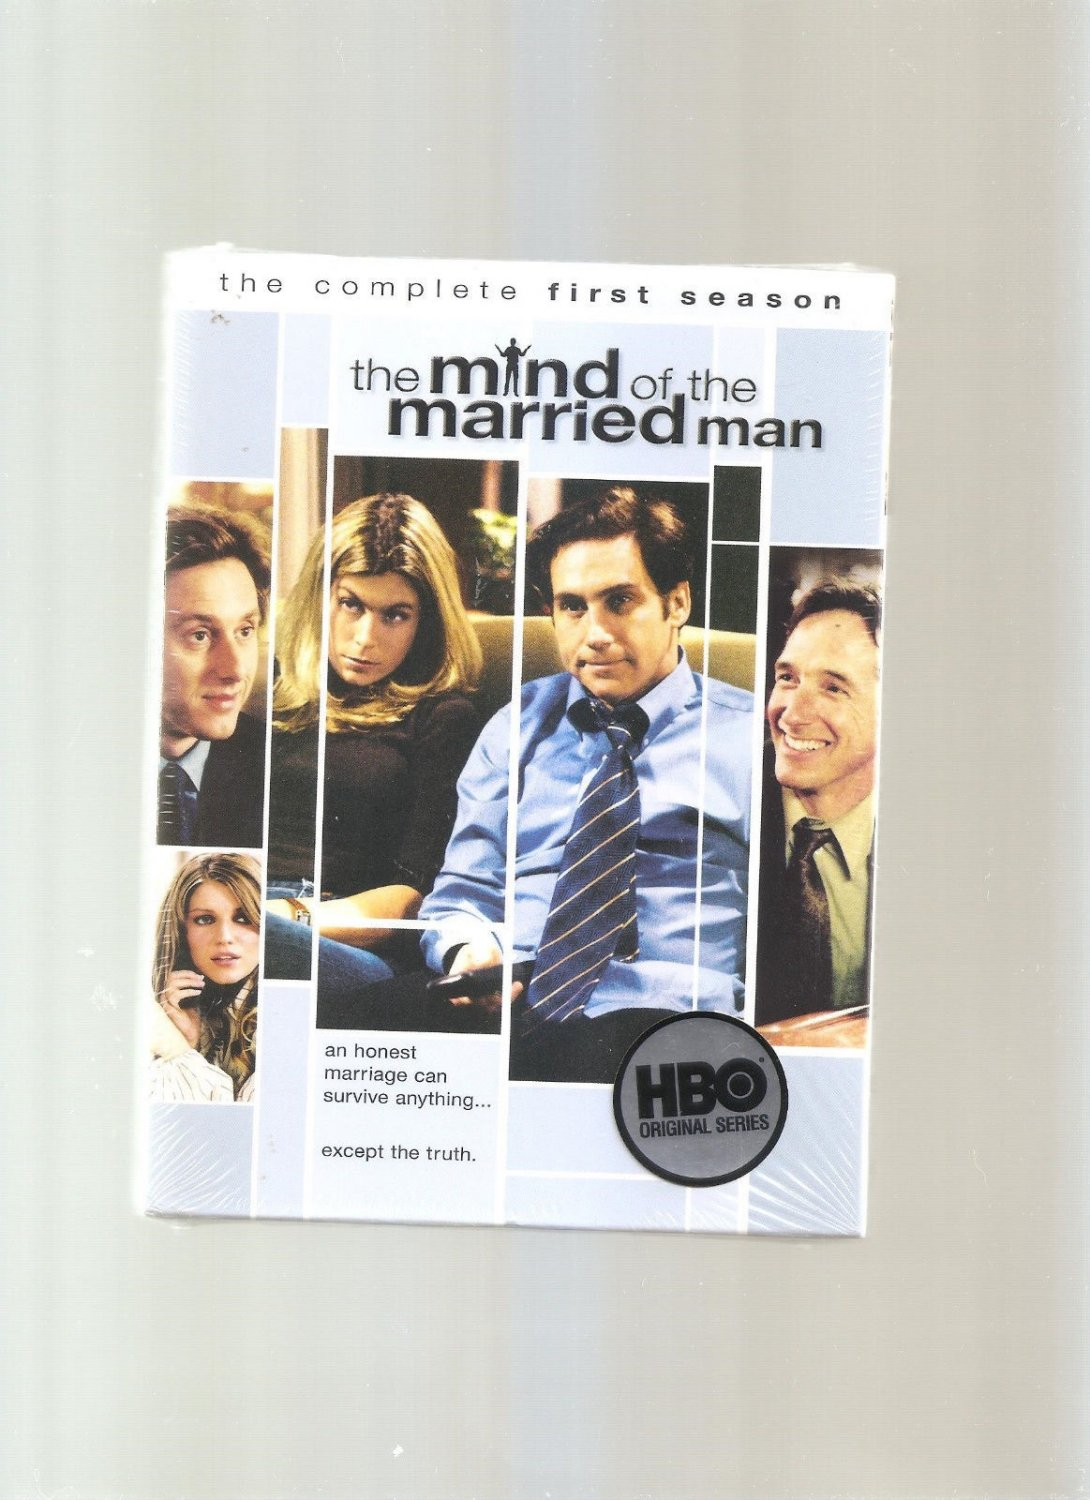 The Mind of the Married Man - Complete First Season (DVD, 2005, 2-Disc Set)